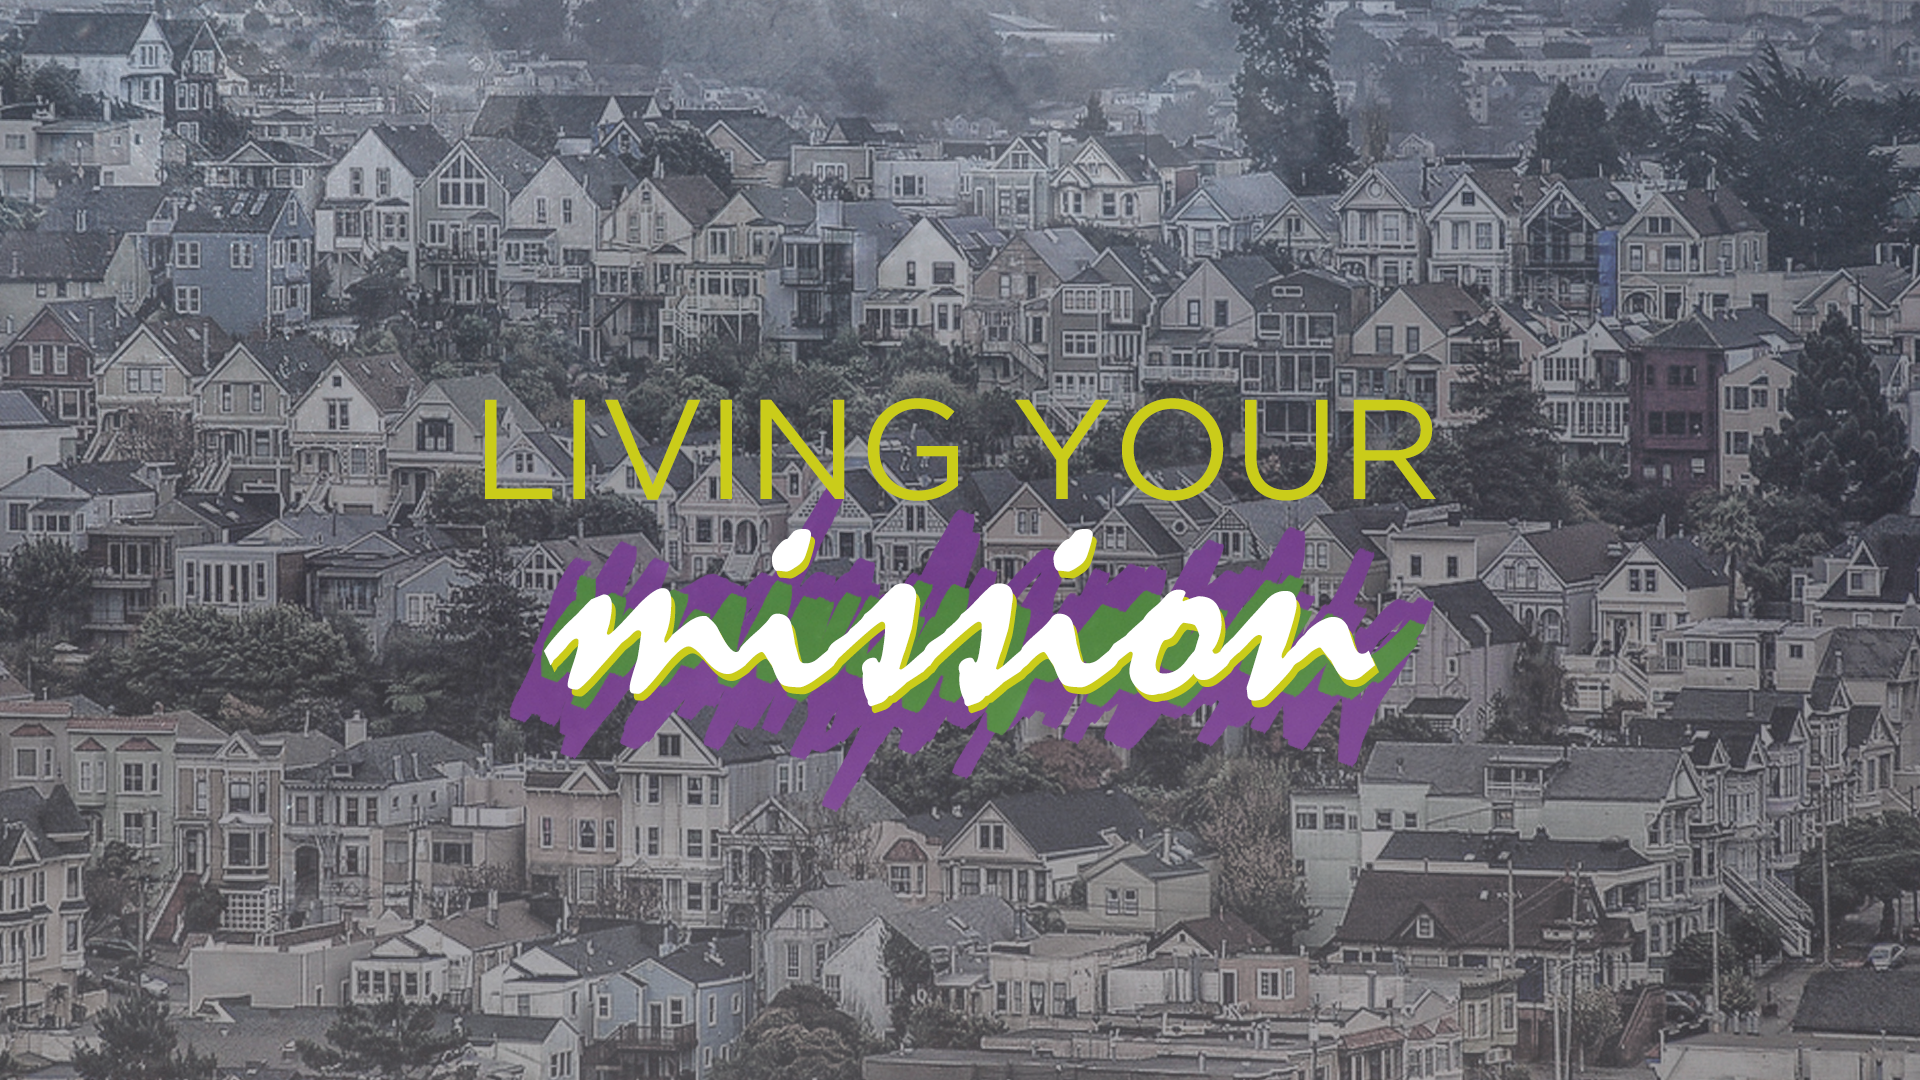 Living Your Mission - EAT